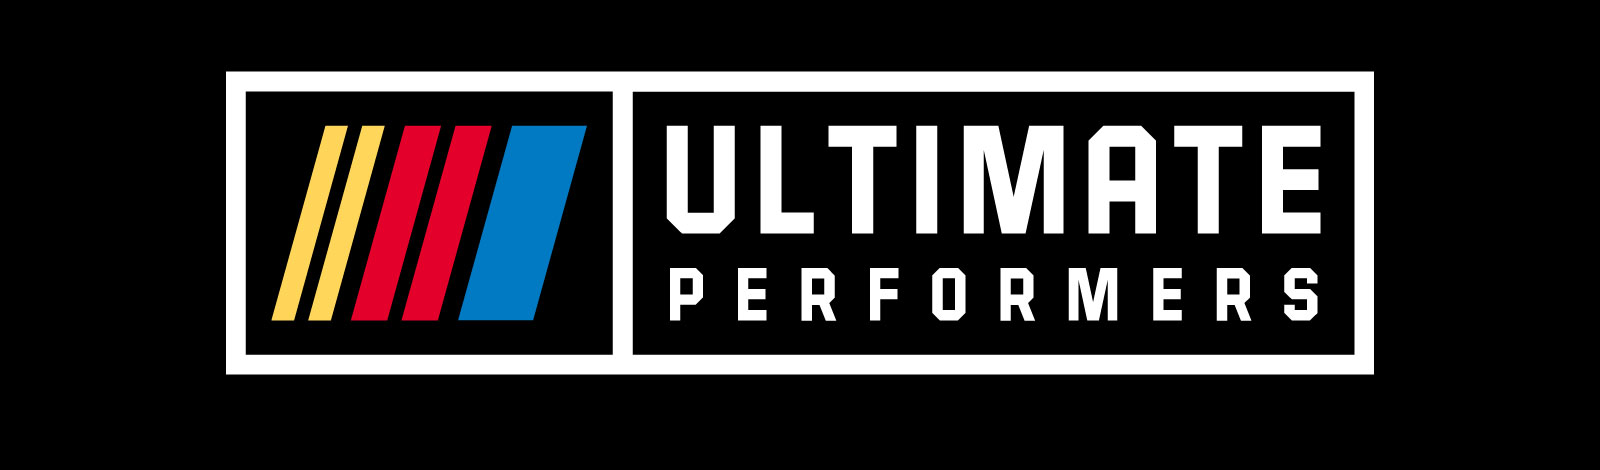 Ultimate Performers